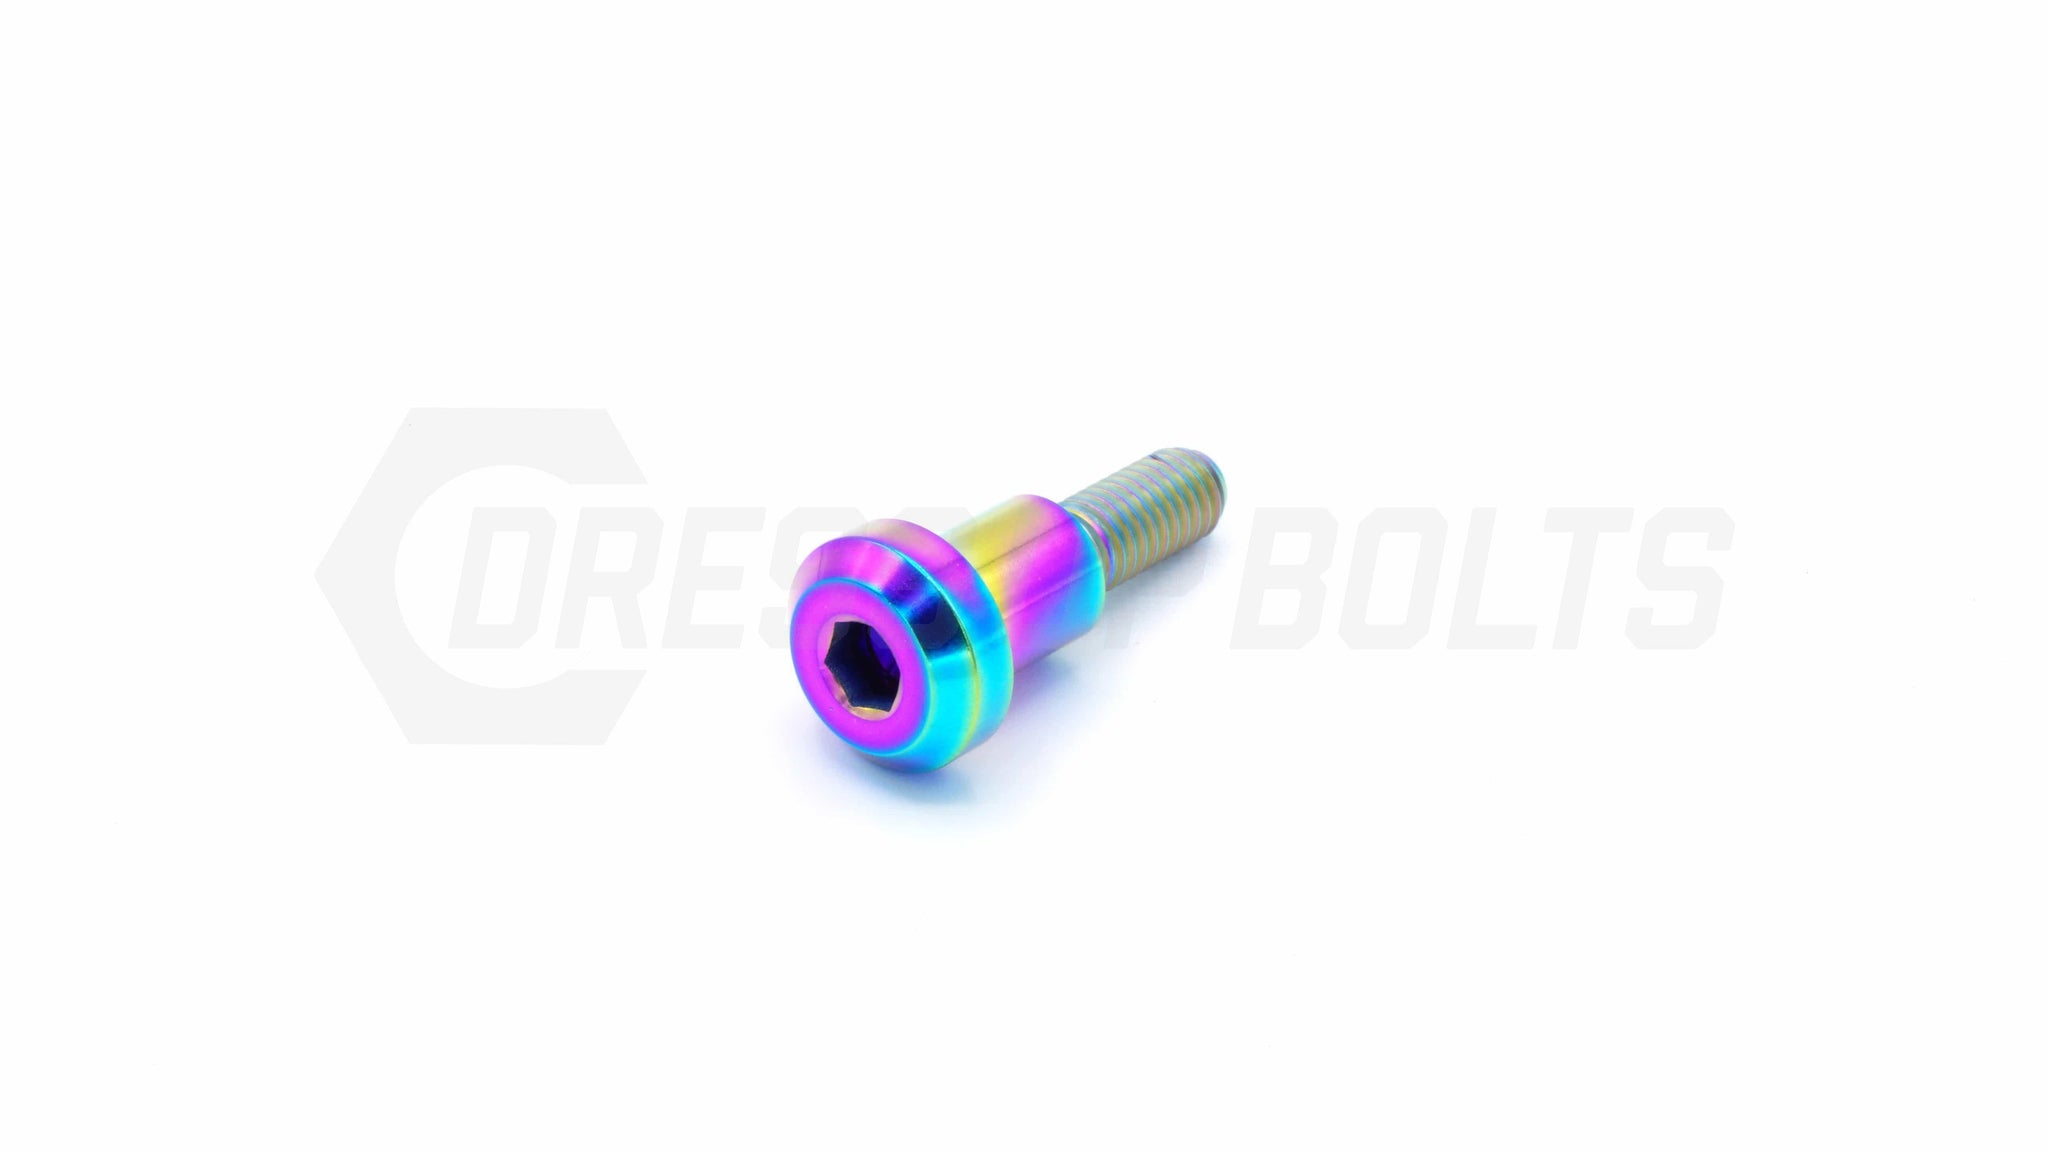 M6 x 1.00 x 25mm Titanium Motor Head Shoulder Bolt by Dress Up Bolts - DressUpBolts.com